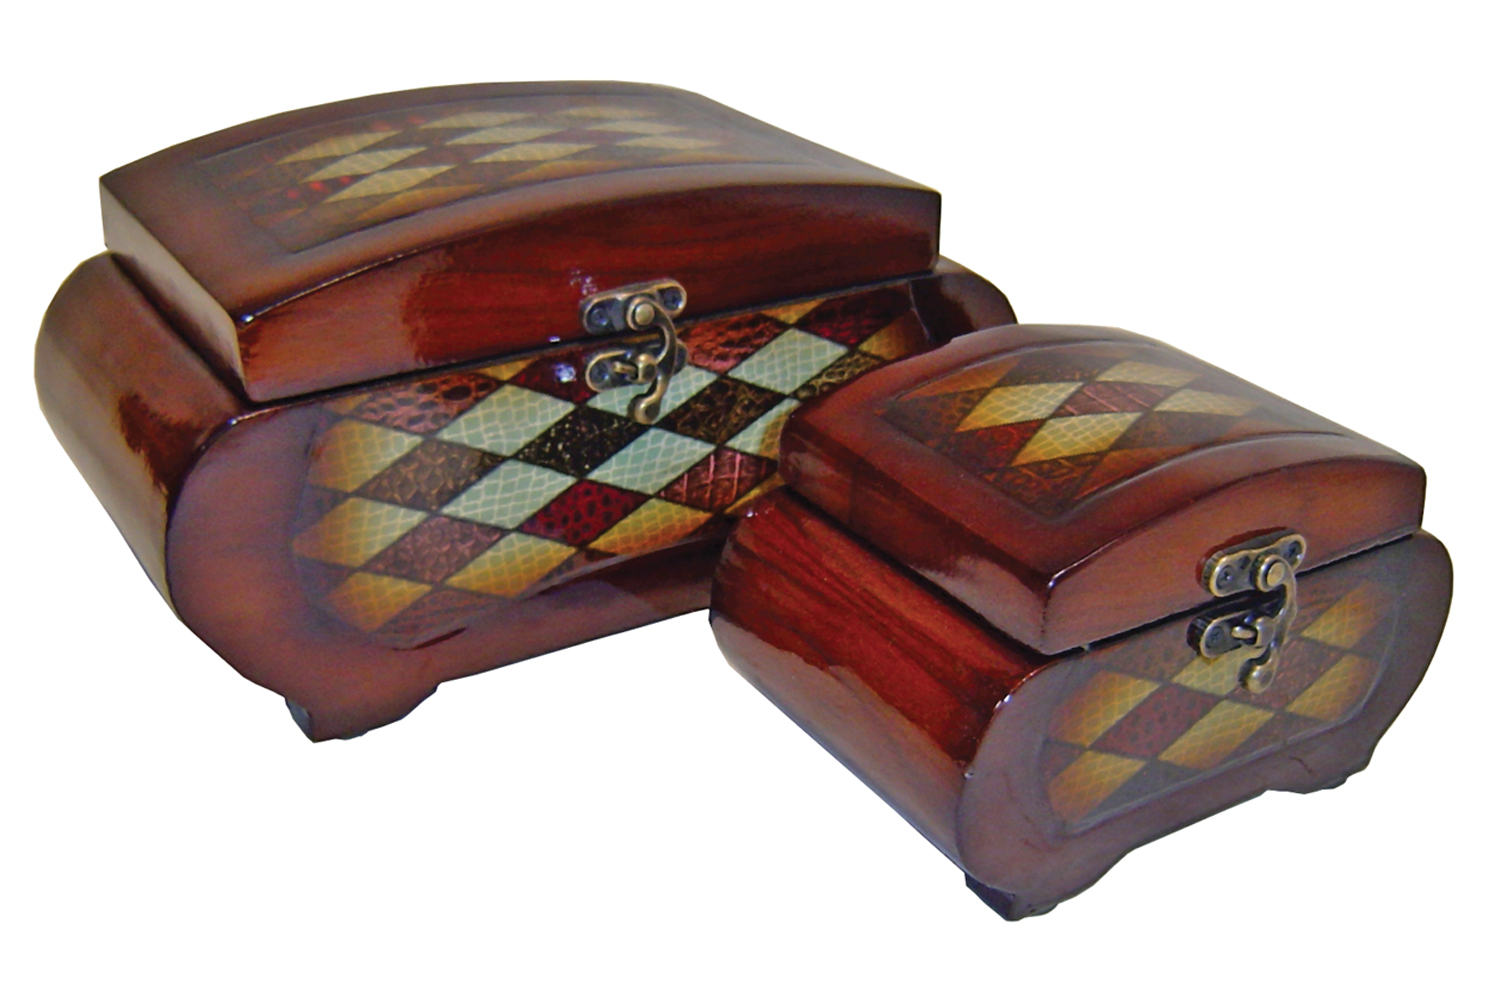 Cheungs Decorative Diamond Pattern Wooden Set of 2 Keepsake Treasure Trinket Storage Box With Brass Latch at Sears.com